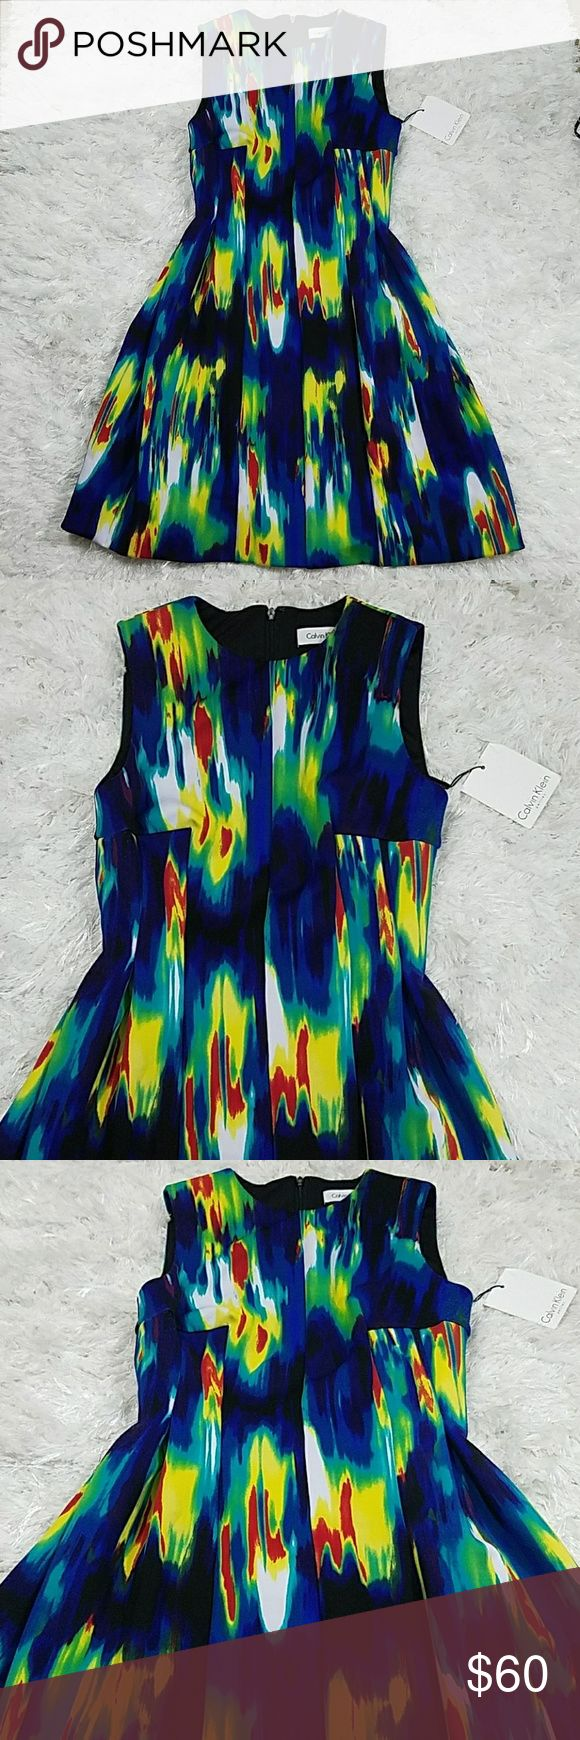 Calvin Klein Petite Size 2 Dress What can I say! Its gorgeous! Size 2 petite  Multicolor with a firm fitted waist then it falls perfect over the hips. Great sturdy material, no see though just great looking dress.  No flaws as seen above, only thing to be honest is that I dont have a lint roller lol other than that its perfect! Calvin Klein Dresses Mini